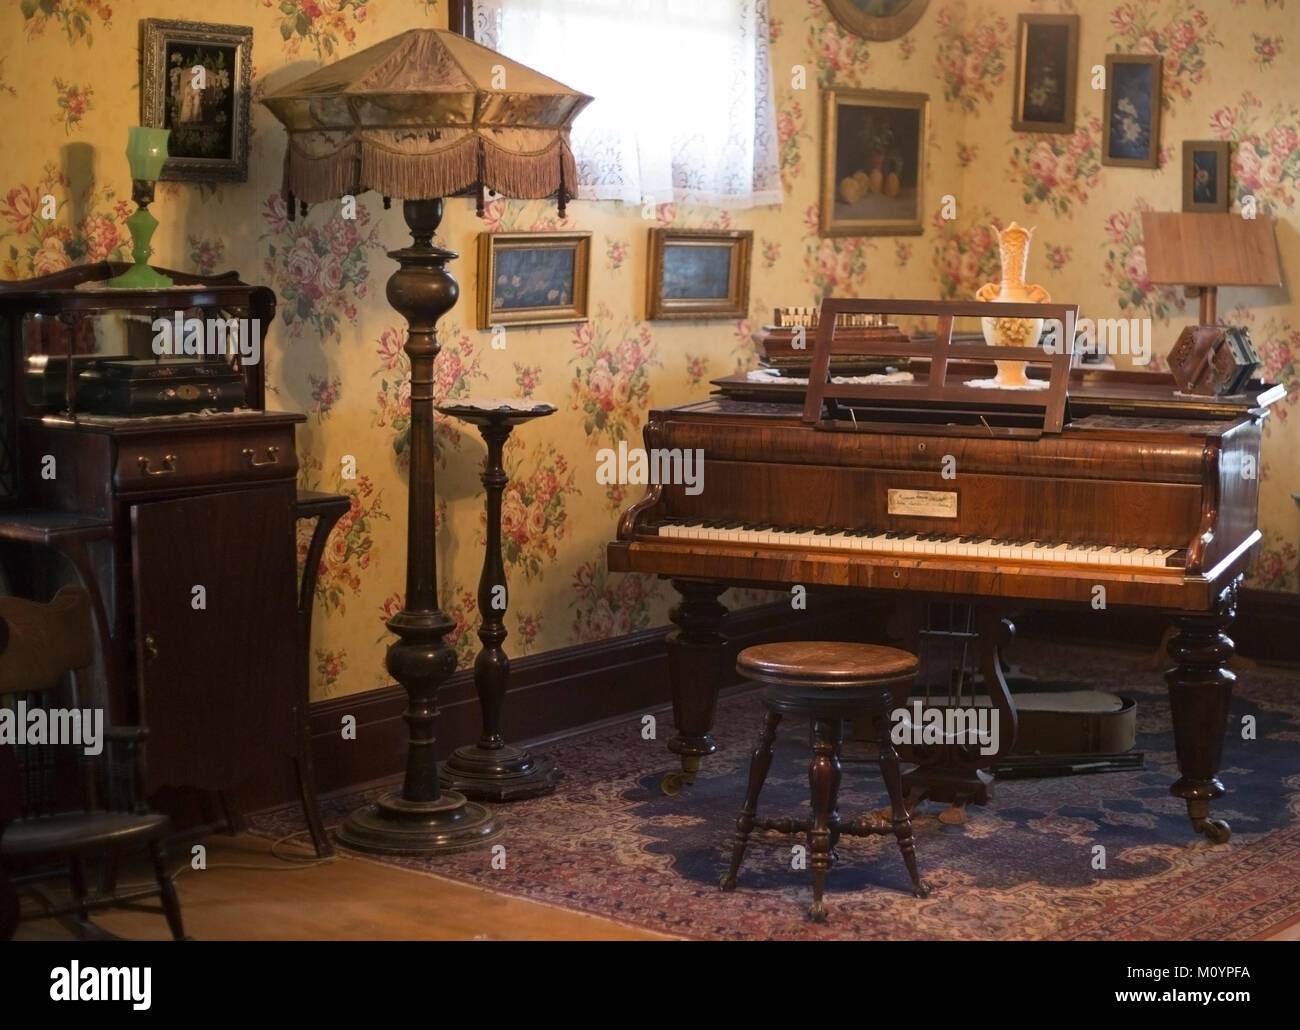 Piano room in the Thorpe House, Victorian house built in 1886, now restored in Heritage Park Historical Village - Stock Image